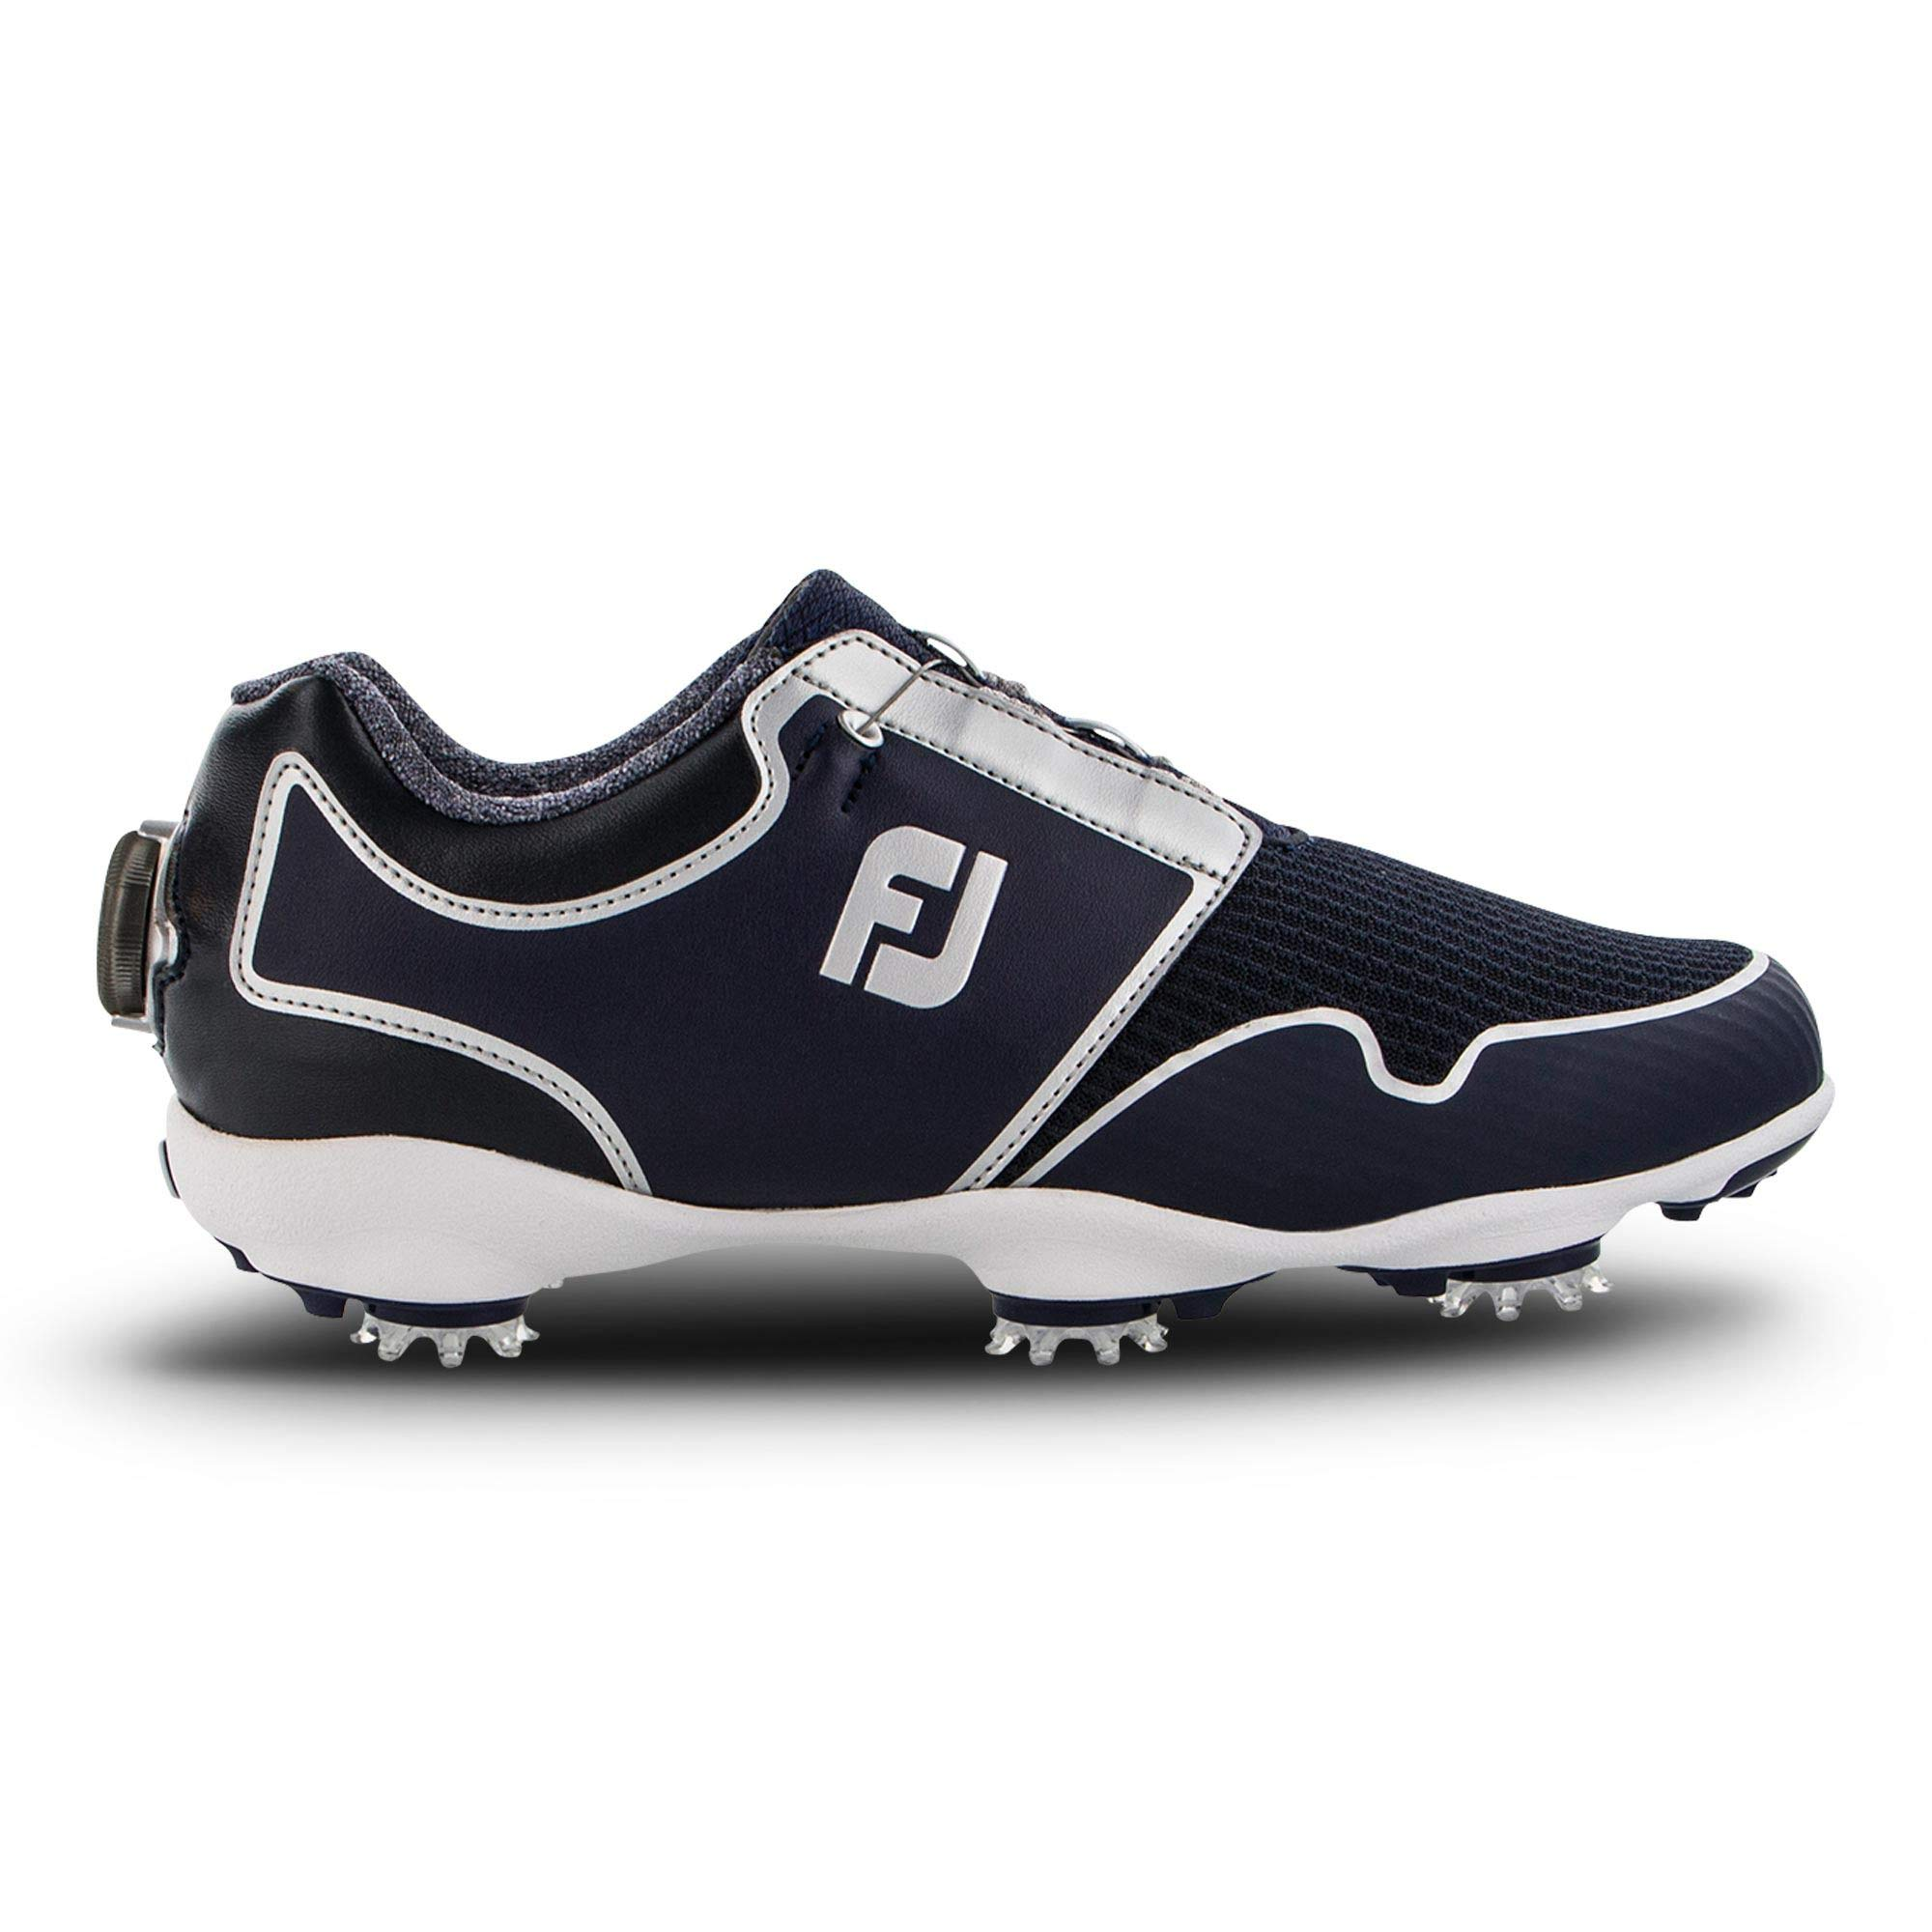 FootJoy Women's Sport TF Boa Golf Shoes, Black/White, 9.5 M US by FootJoy